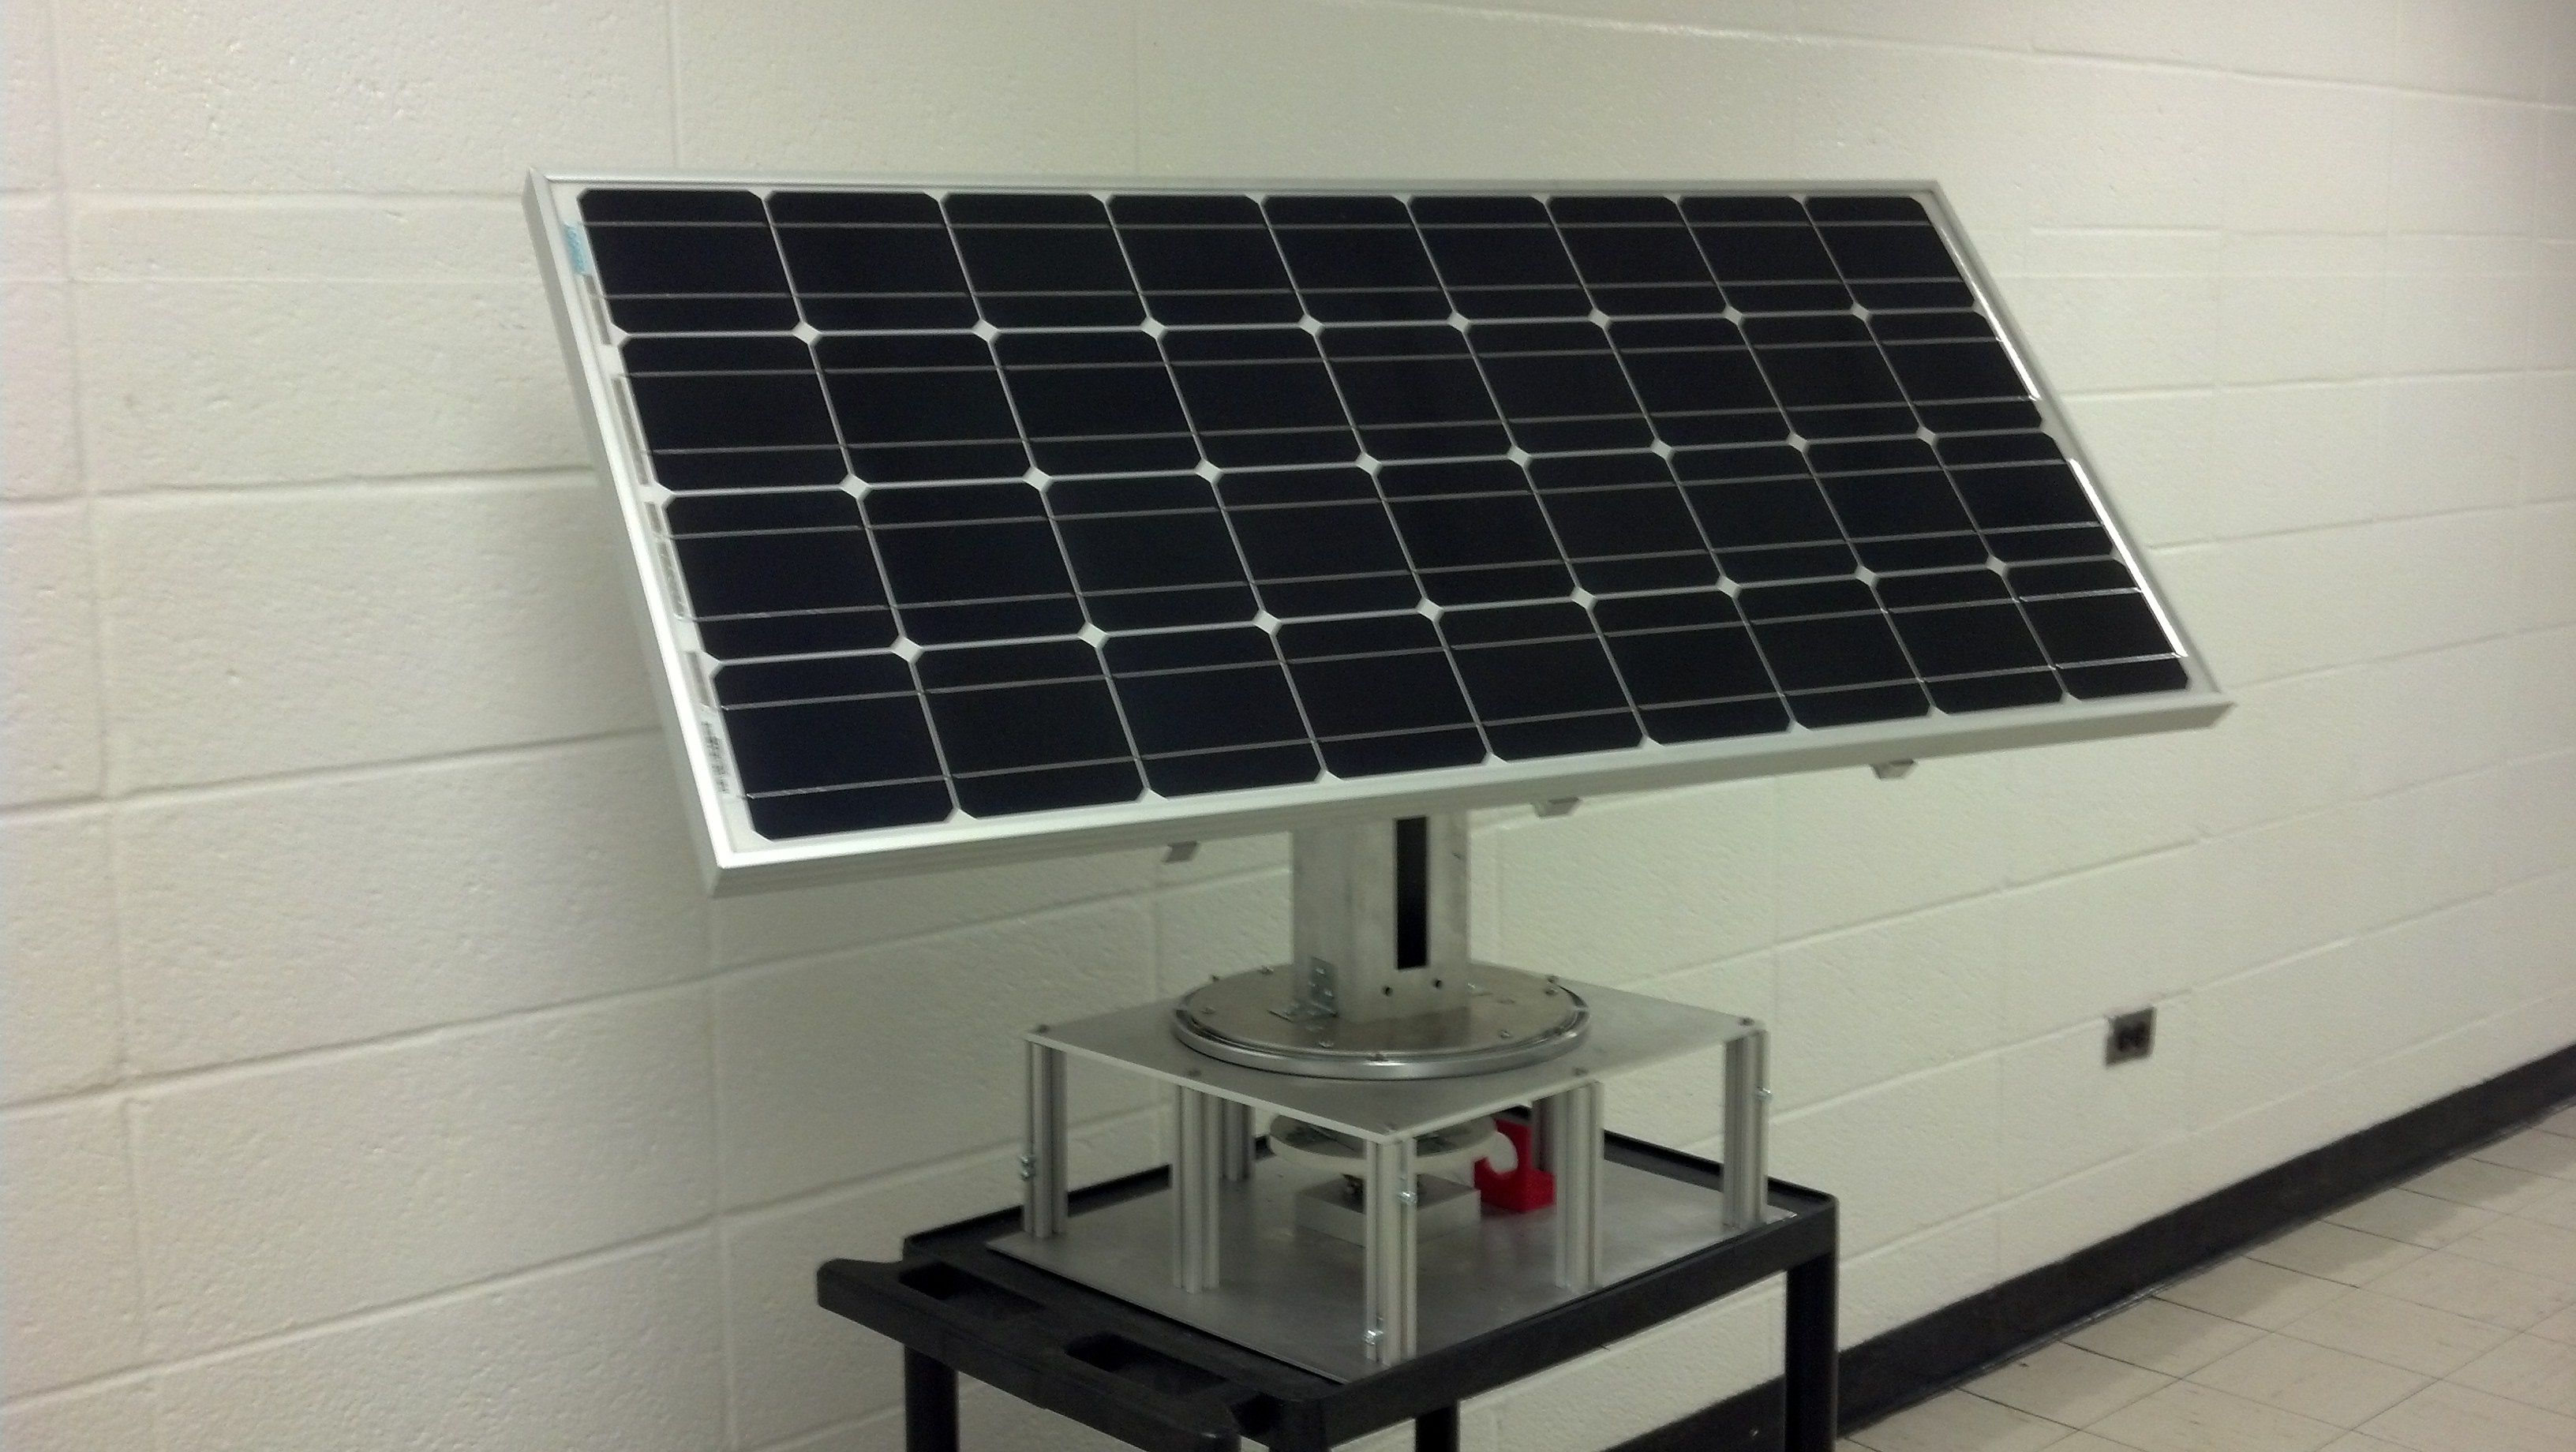 Internationals - Dual Axis Active Solar Tracker | HDRA ARCH